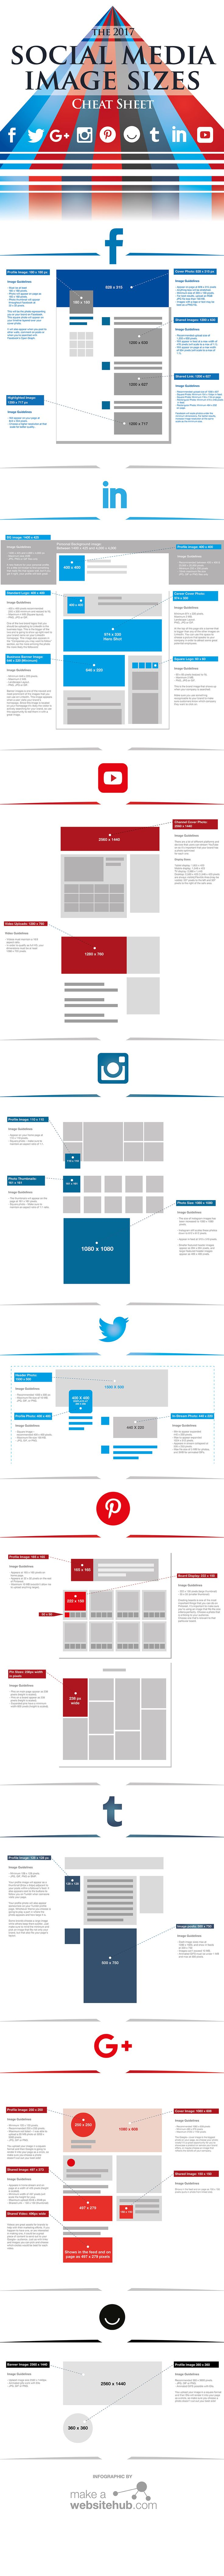 The 2017 Social Media Image Size Cheat Sheet [Infographic] - @redwebdesign